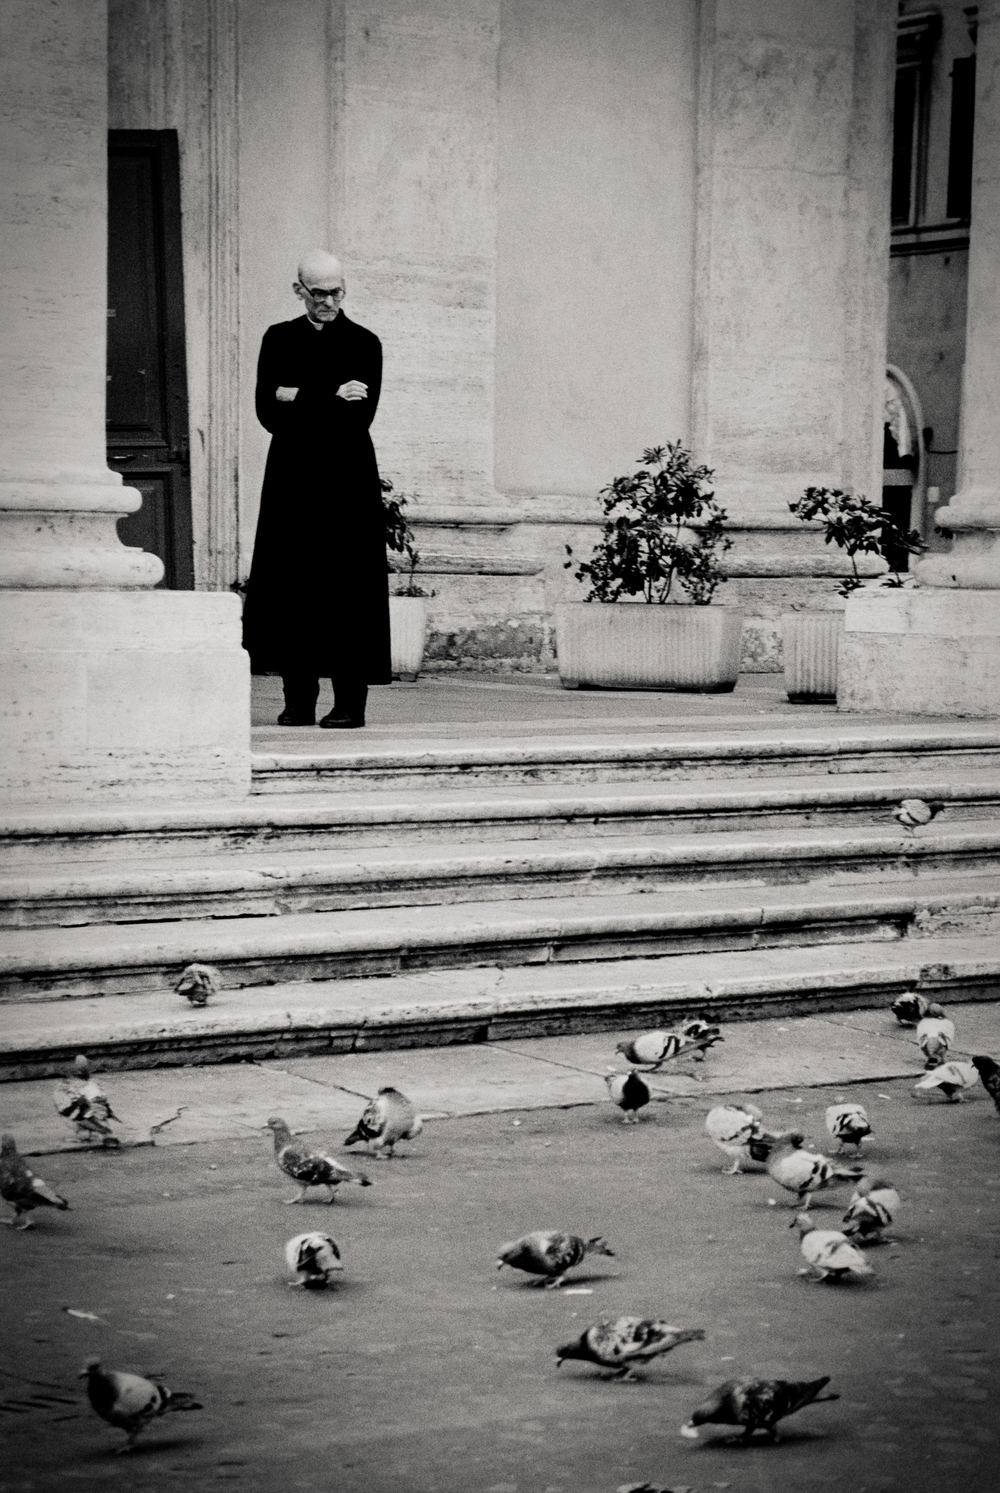 priest, Florence, Italy 2001.